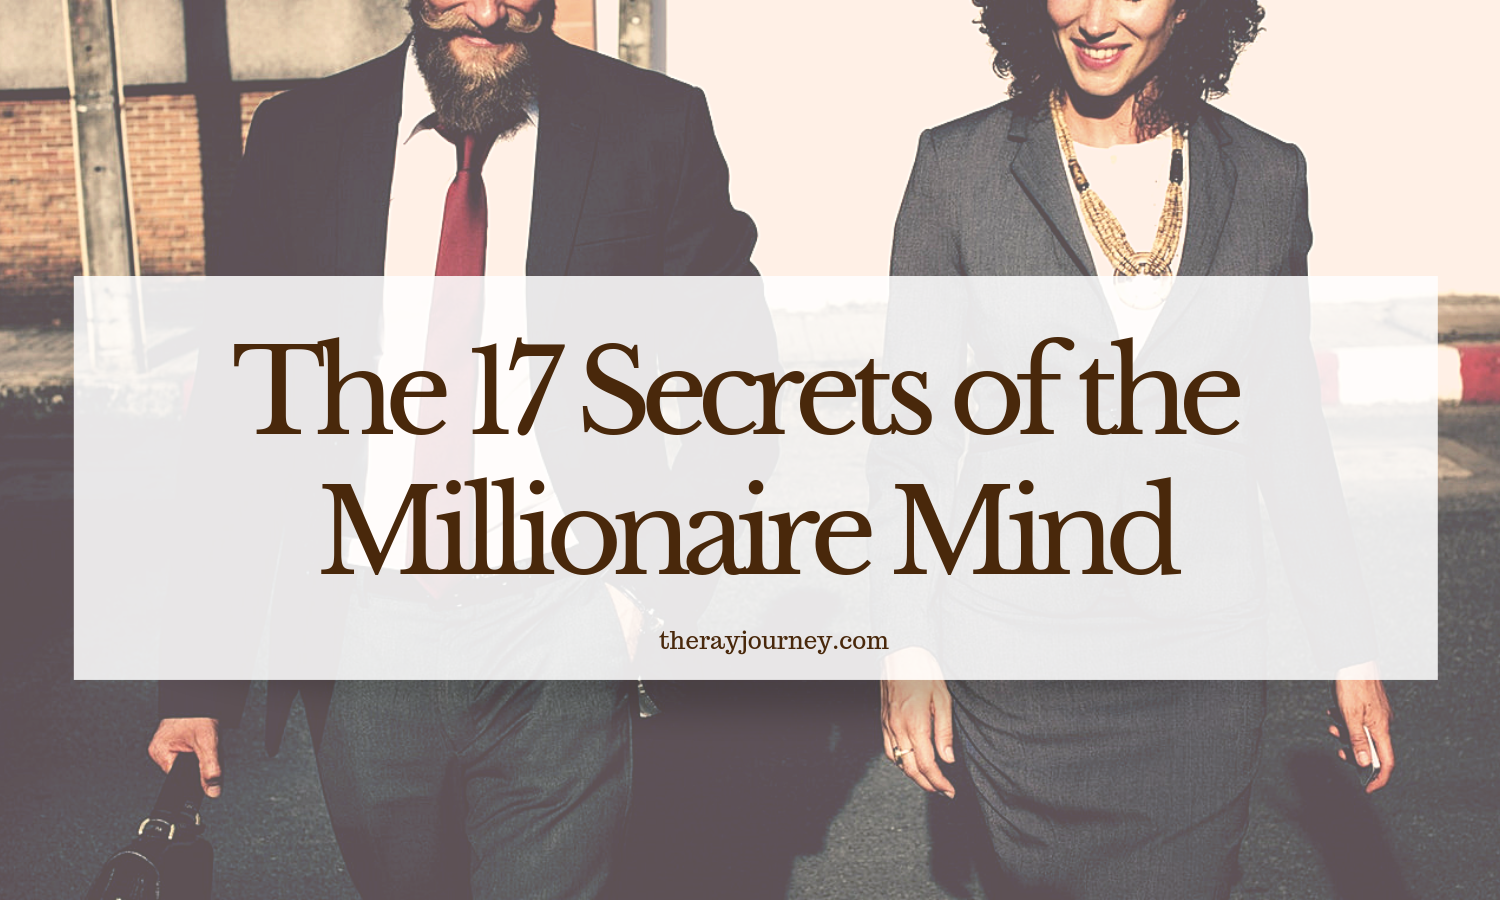 the 17 secrets of the millionaire mind - photo taken by rawpixel.com